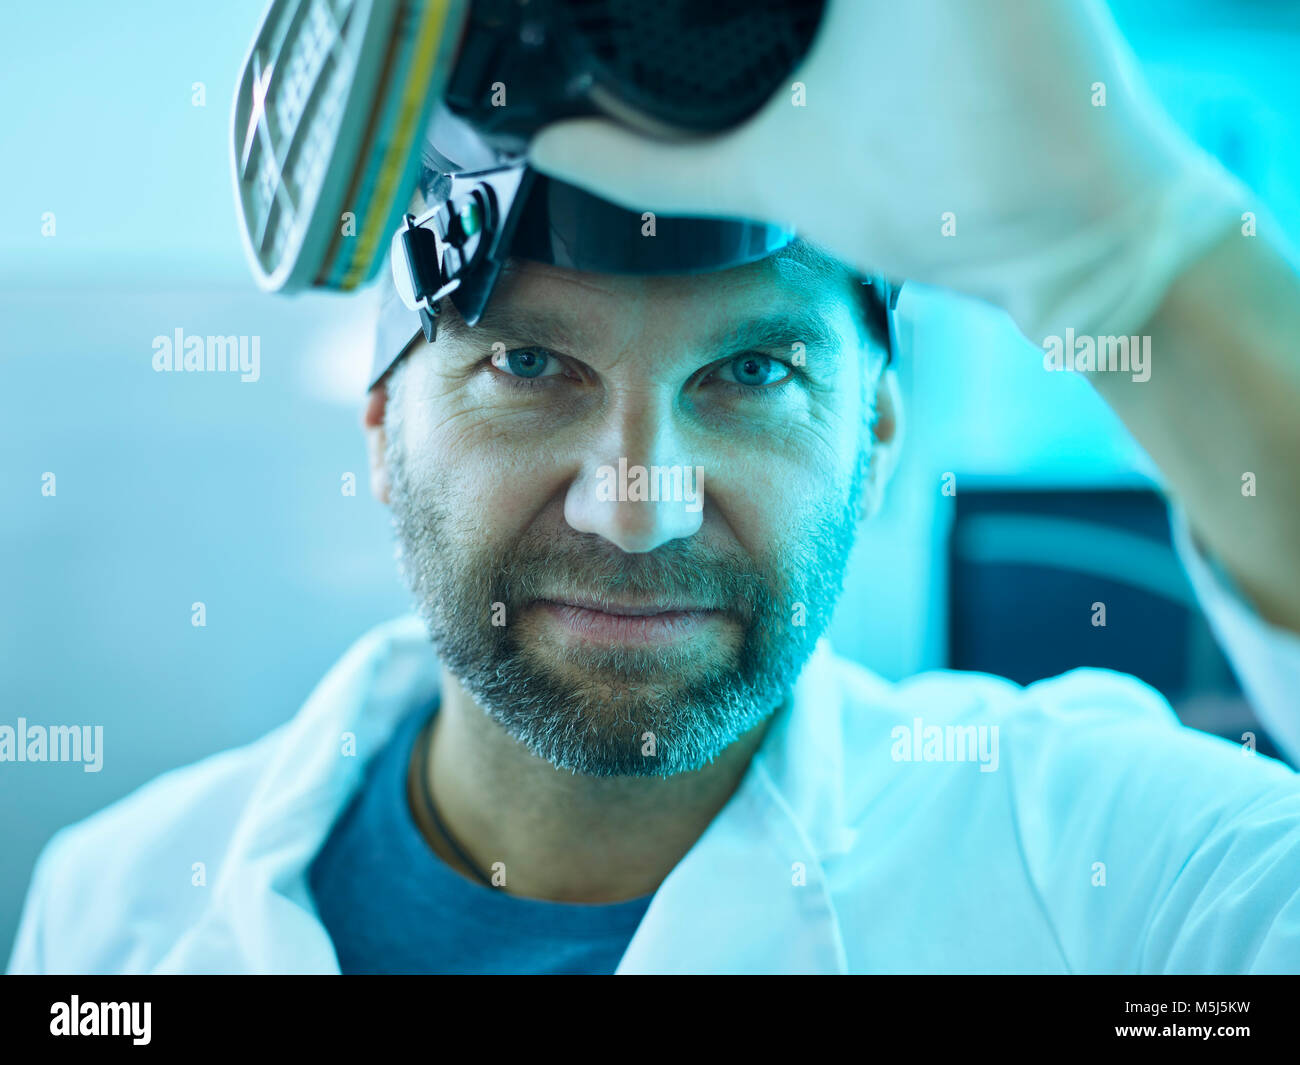 Portrait of man removing respirator - Stock Image